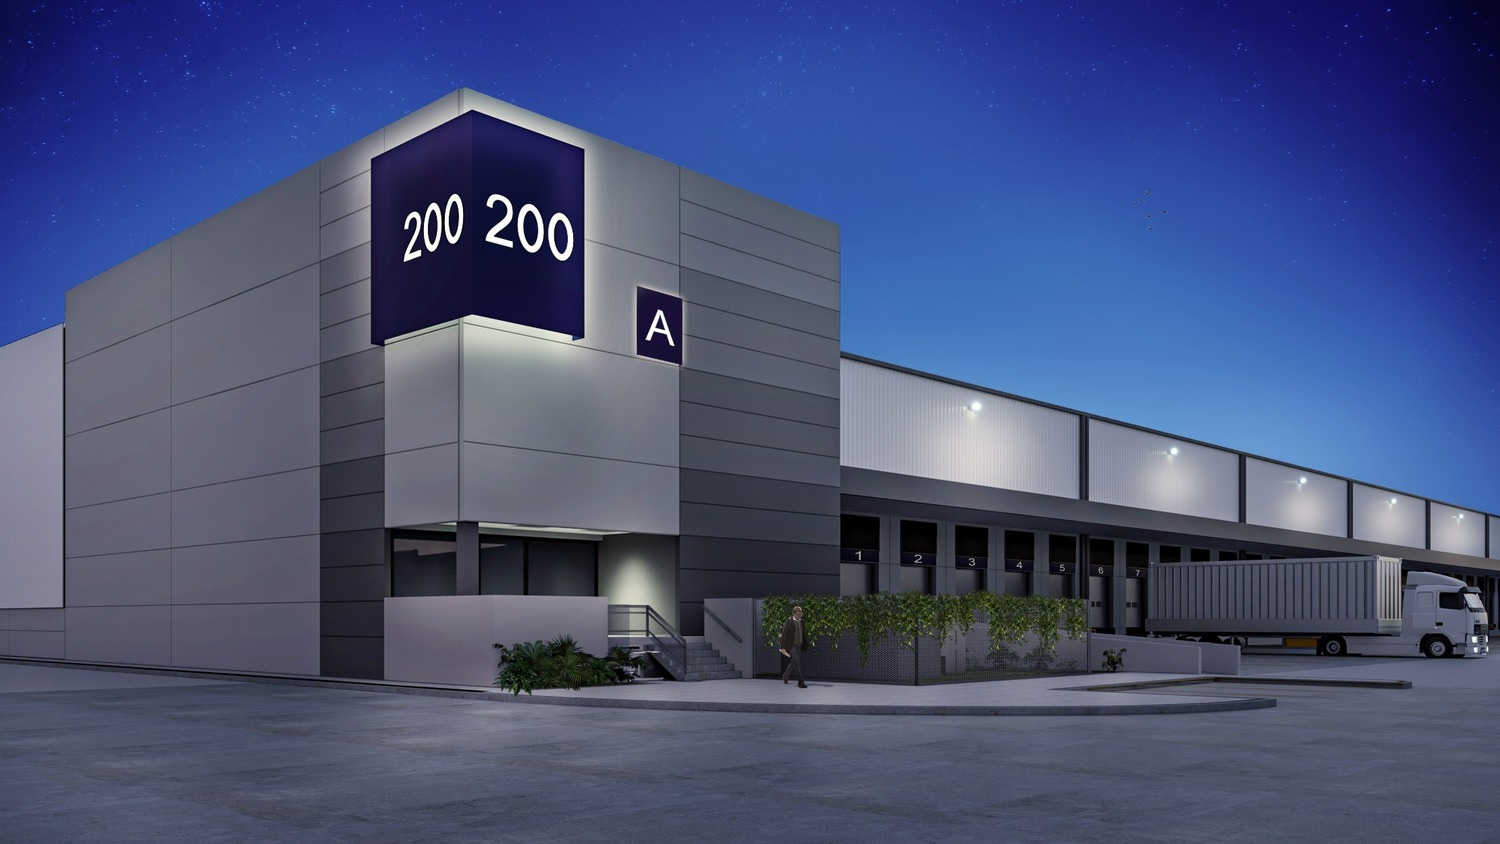 A large grey building with the number 200 and the letter A on signs at the outside of it.